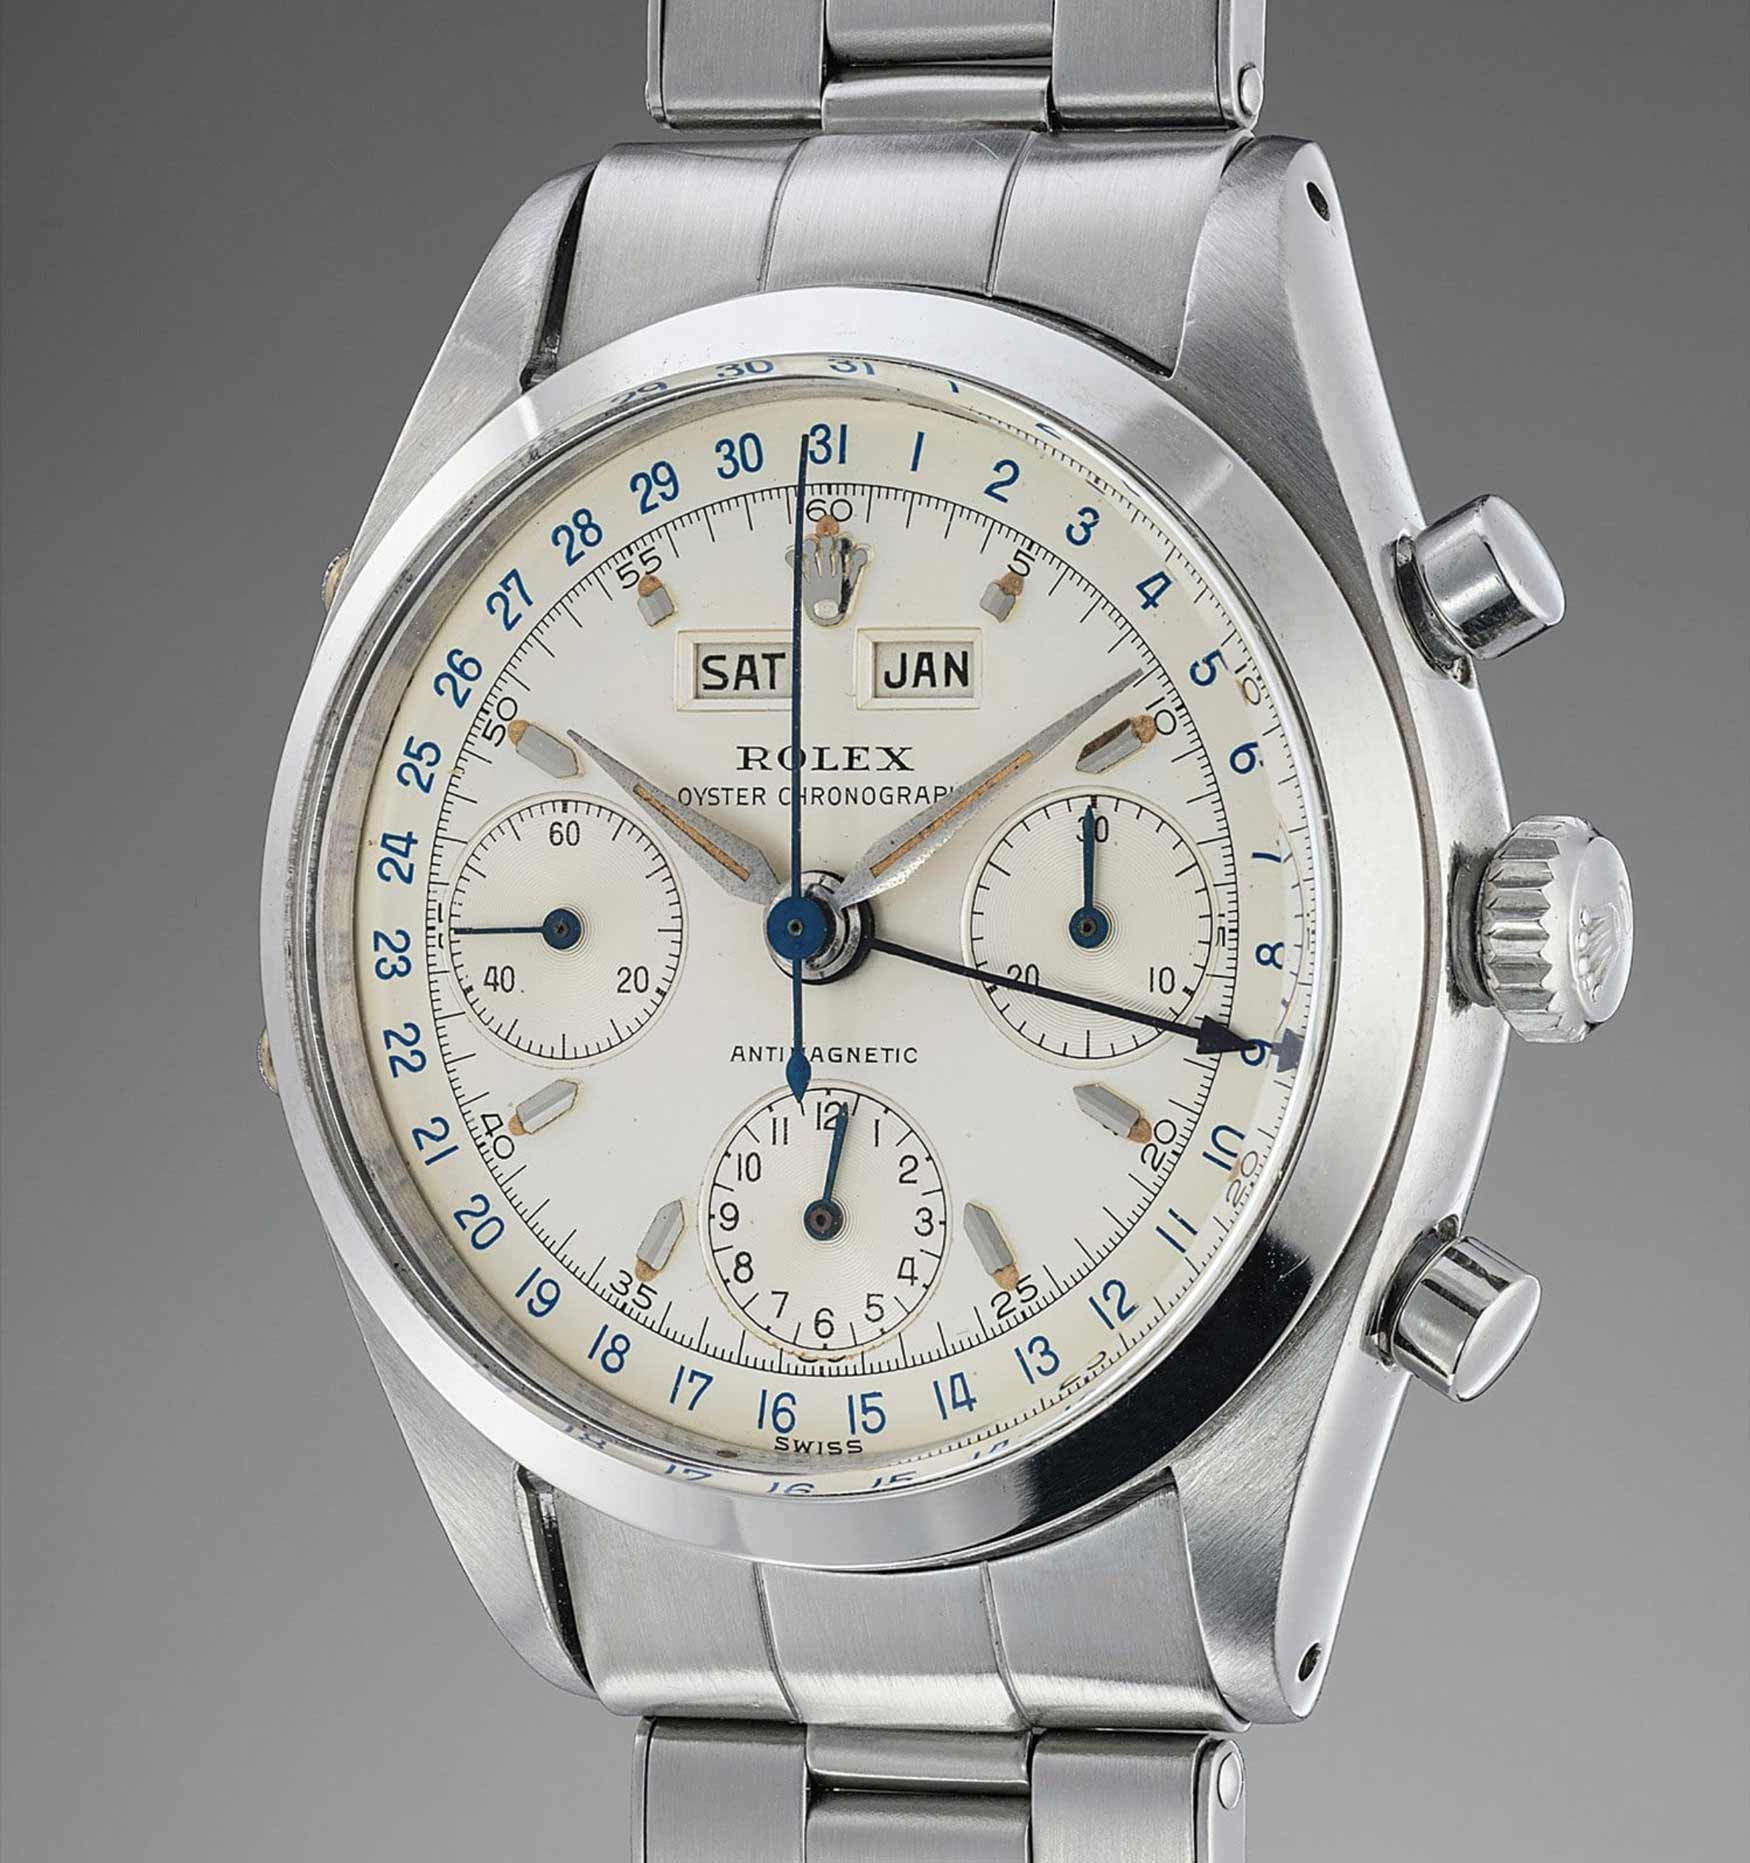 This Pre-Daytona Chronograph is sure to exceed estimates(photo courtesy of Phillips)